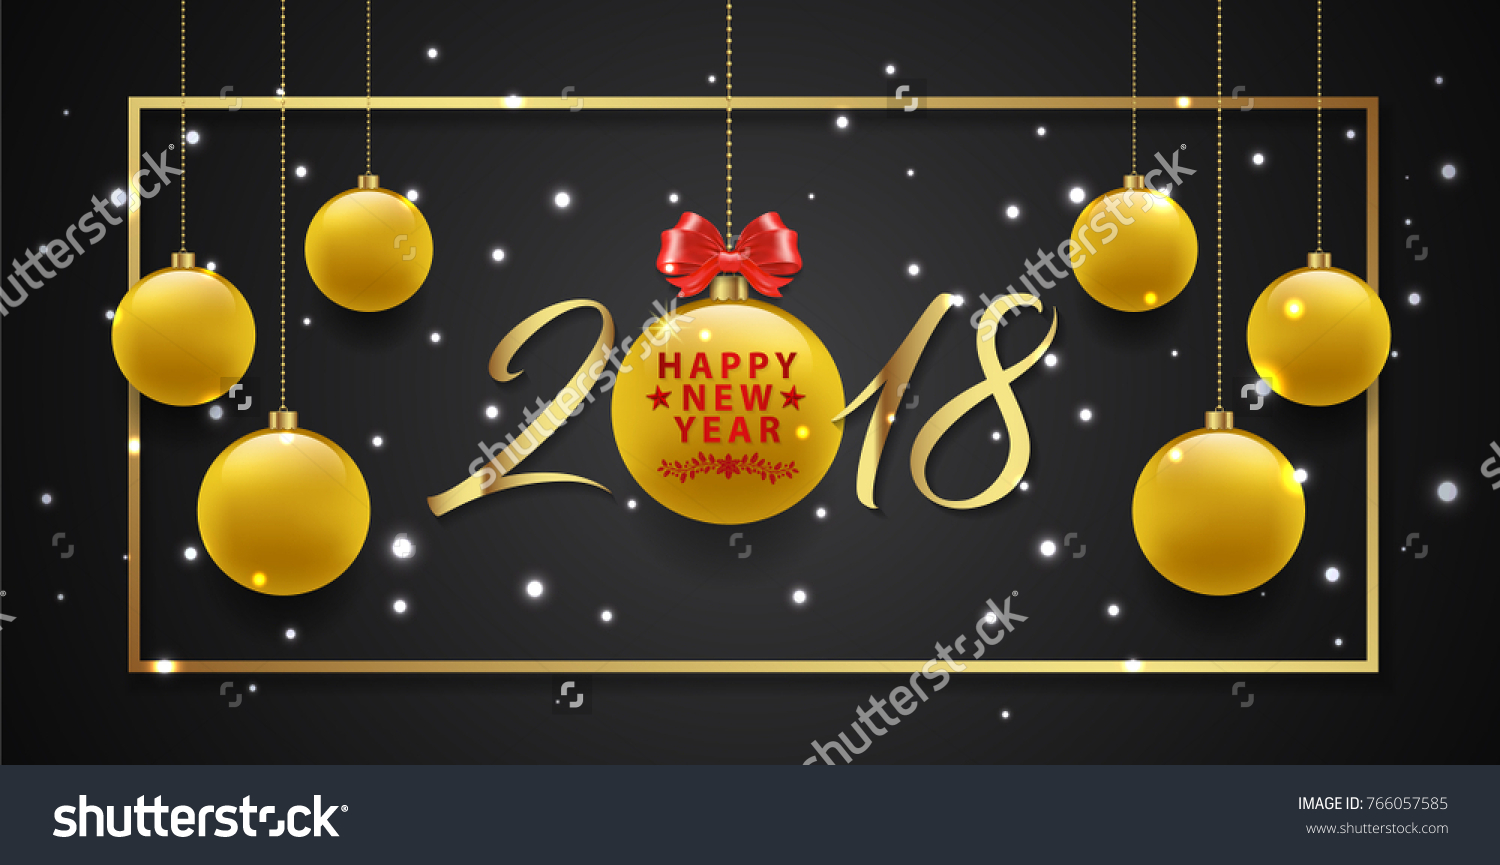 happy new year 2018 banner template golden glitter balls stars fame ribbons and